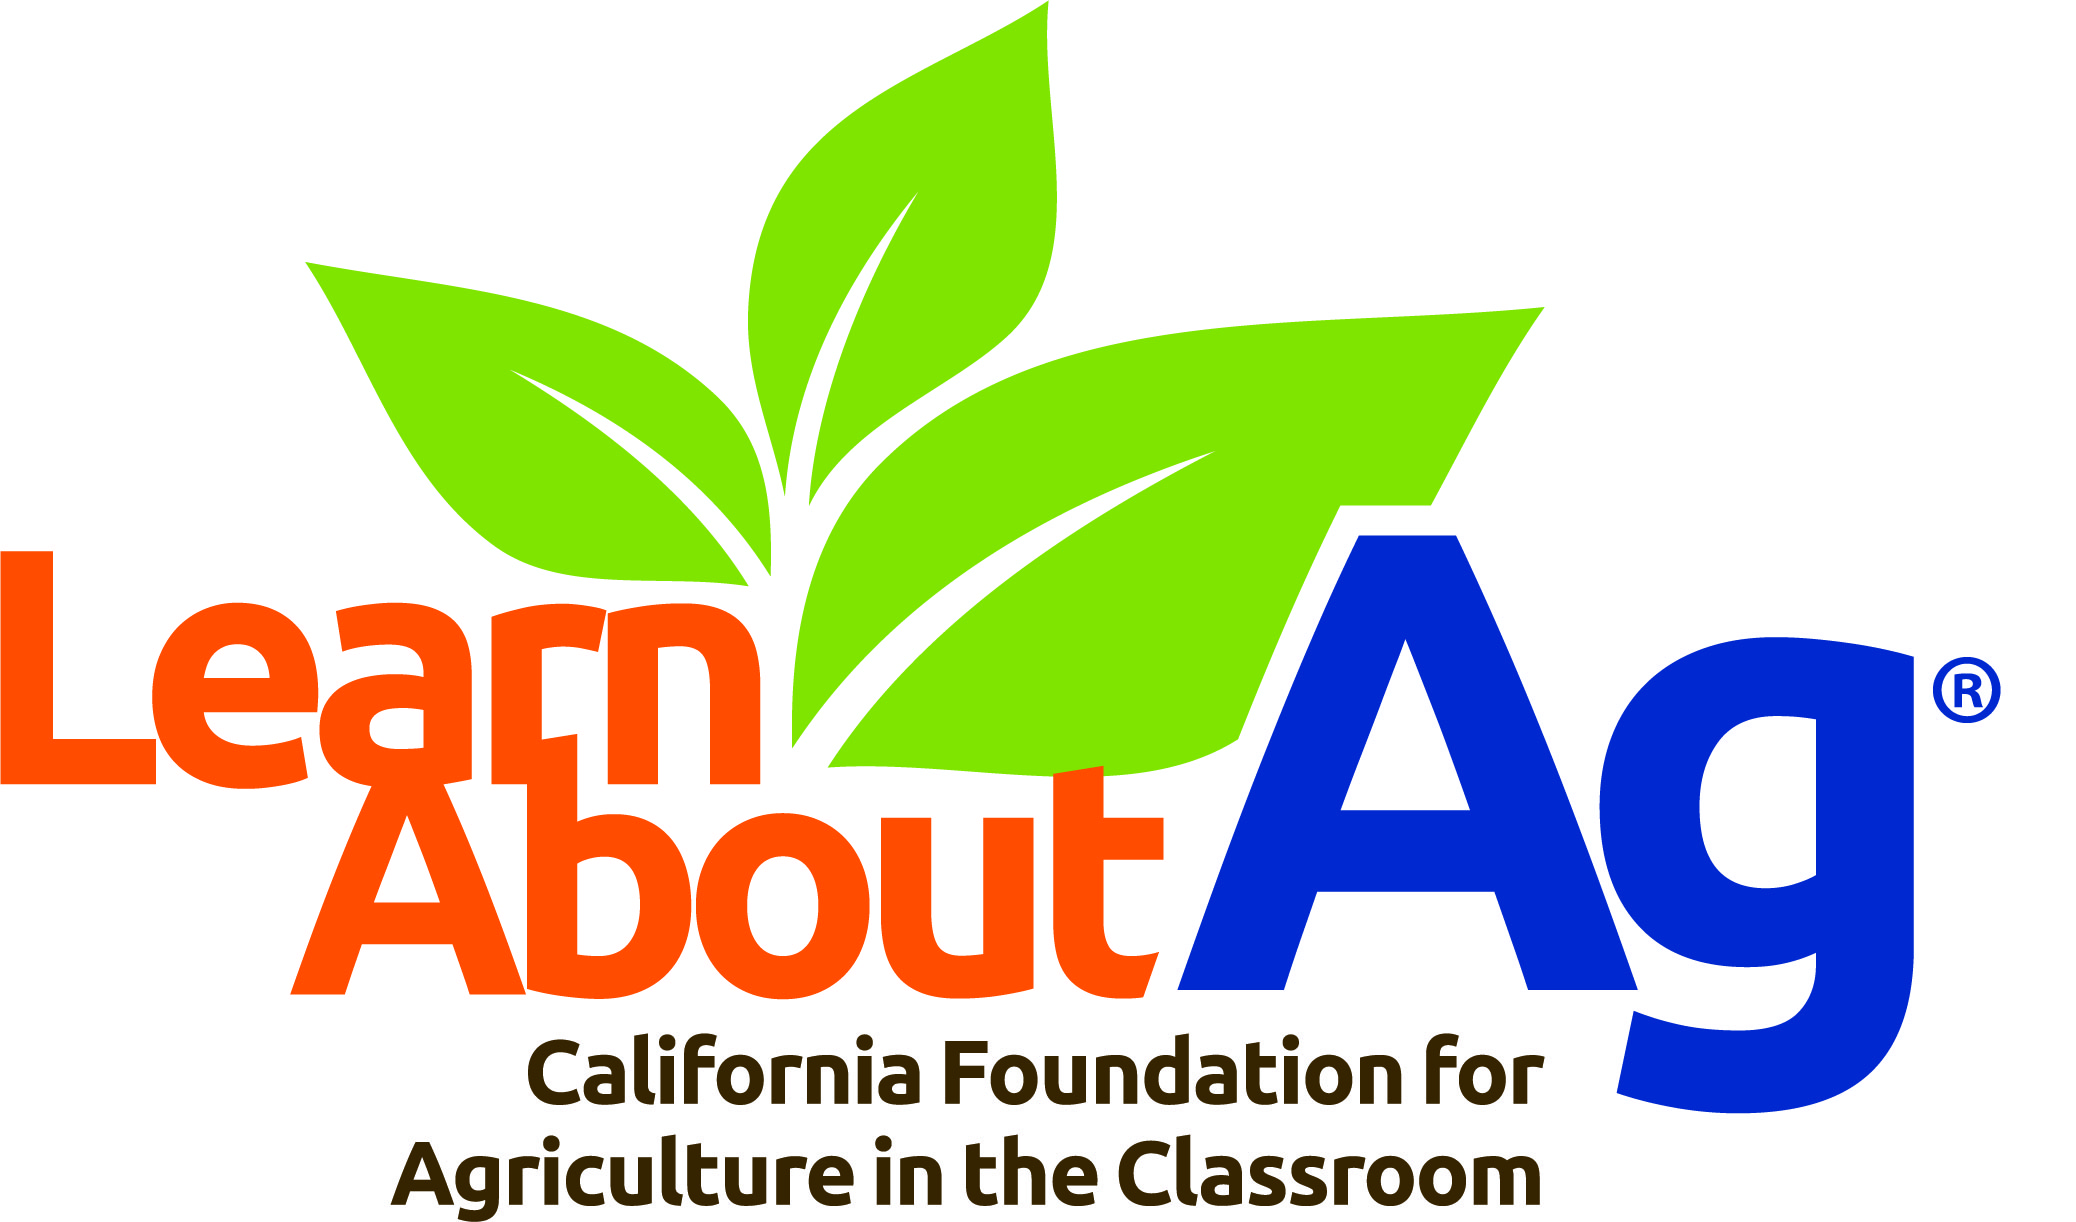 Learn About Ag logo;